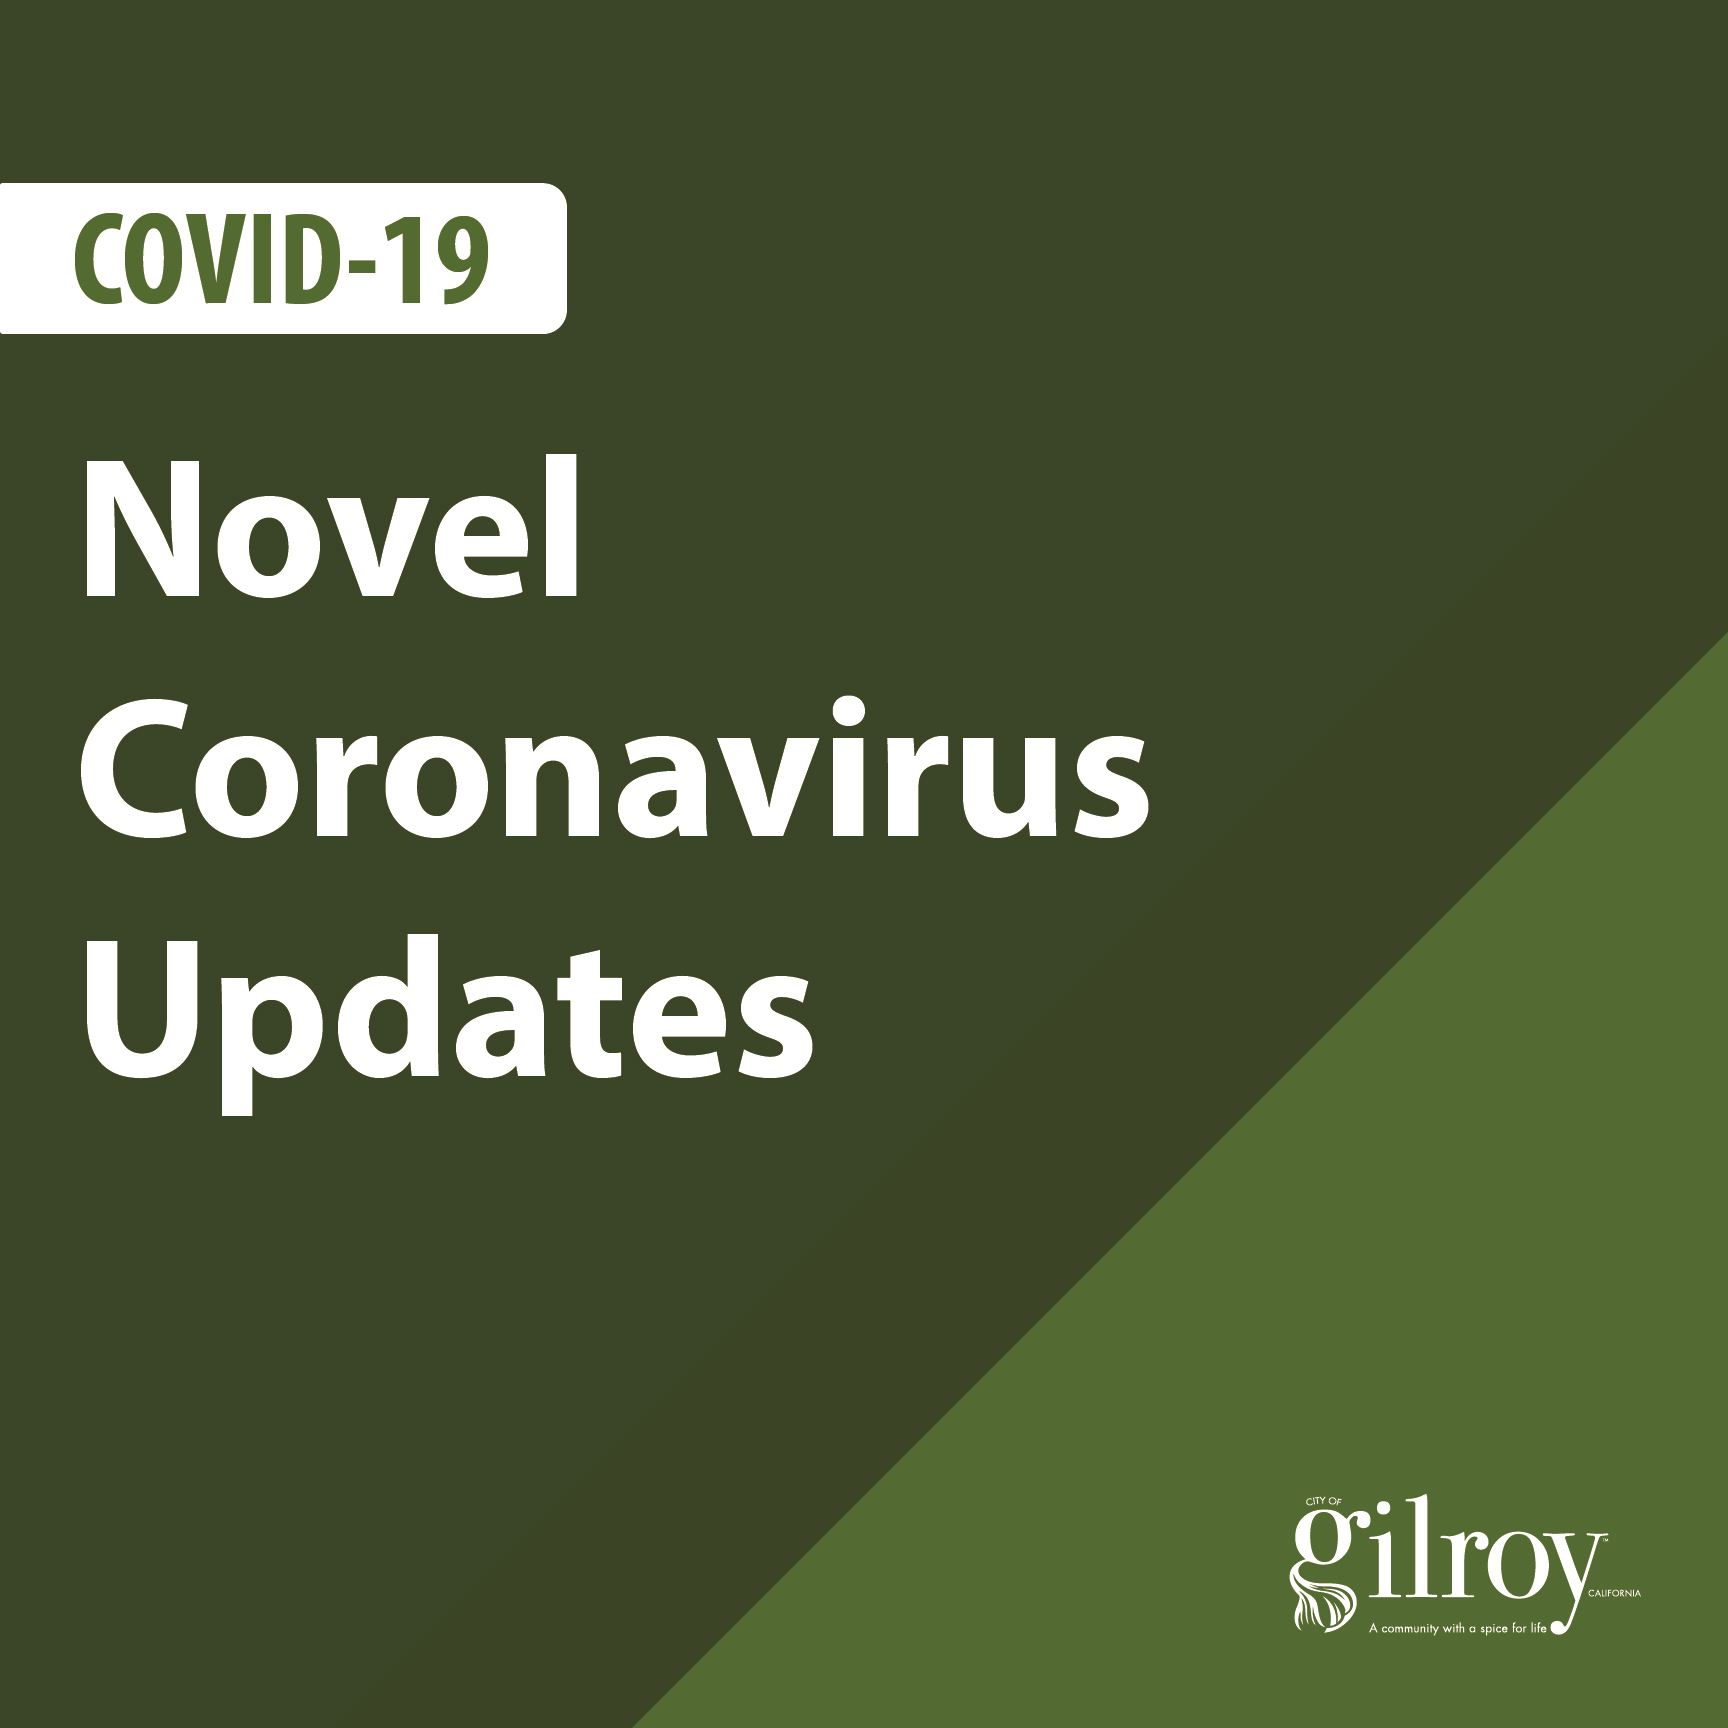 Plain Image with City logo and text stating Coronavirus update